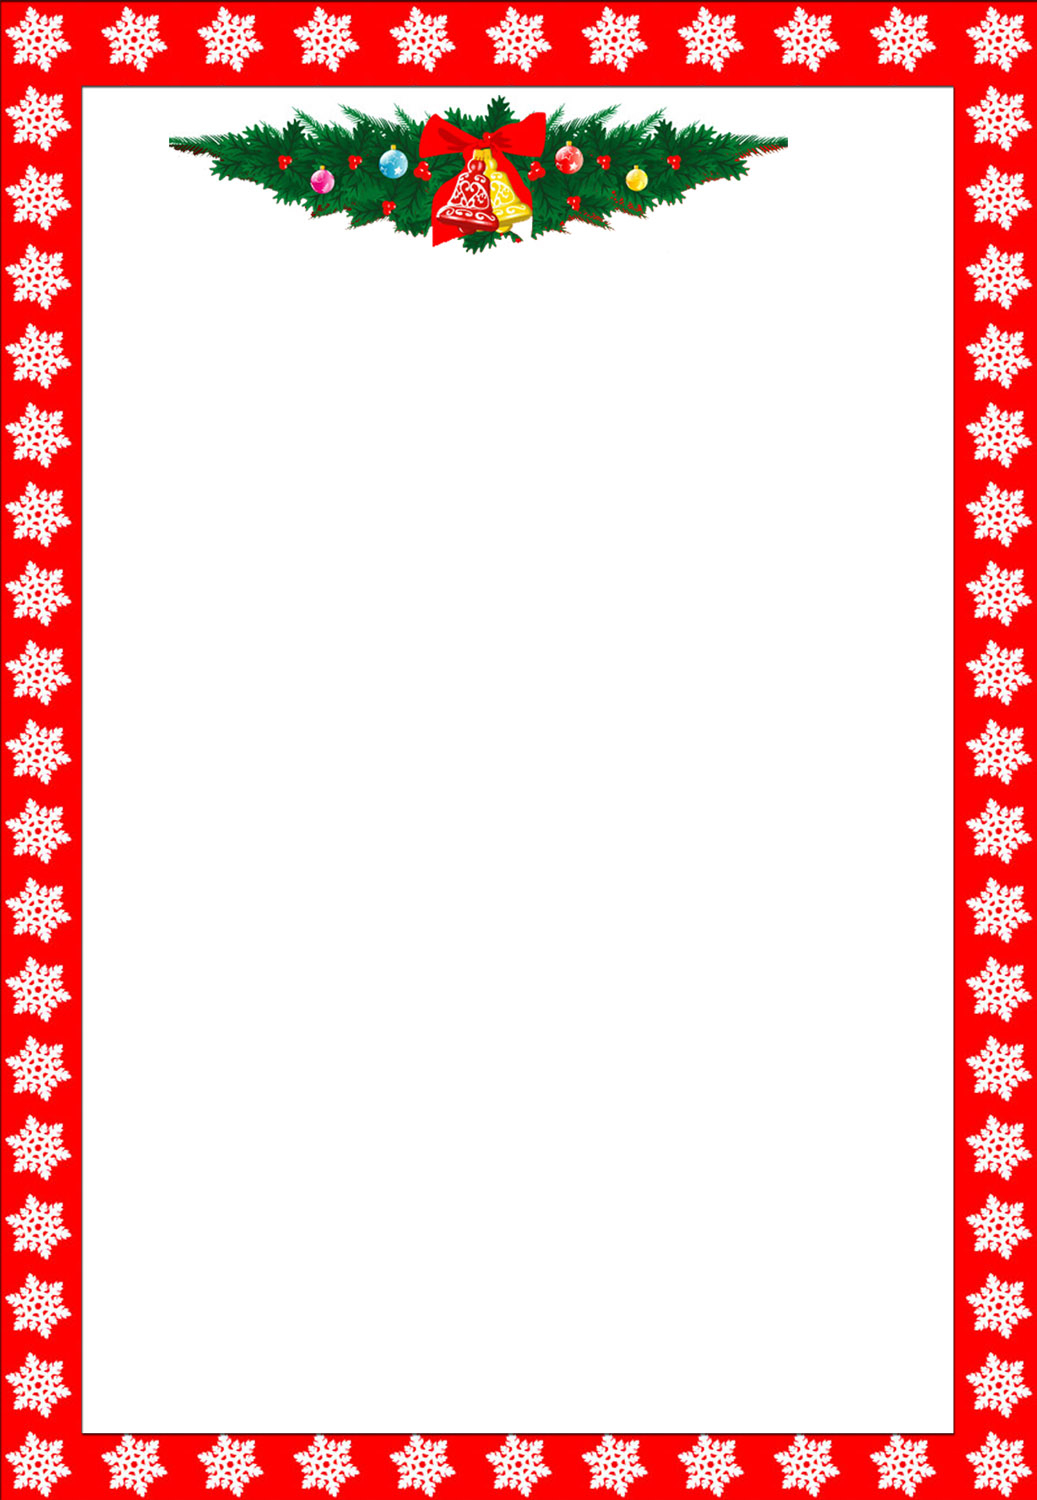 Free Printable Christmas Stationary Borders Trials Ireland - Free Printable Letterhead Borders